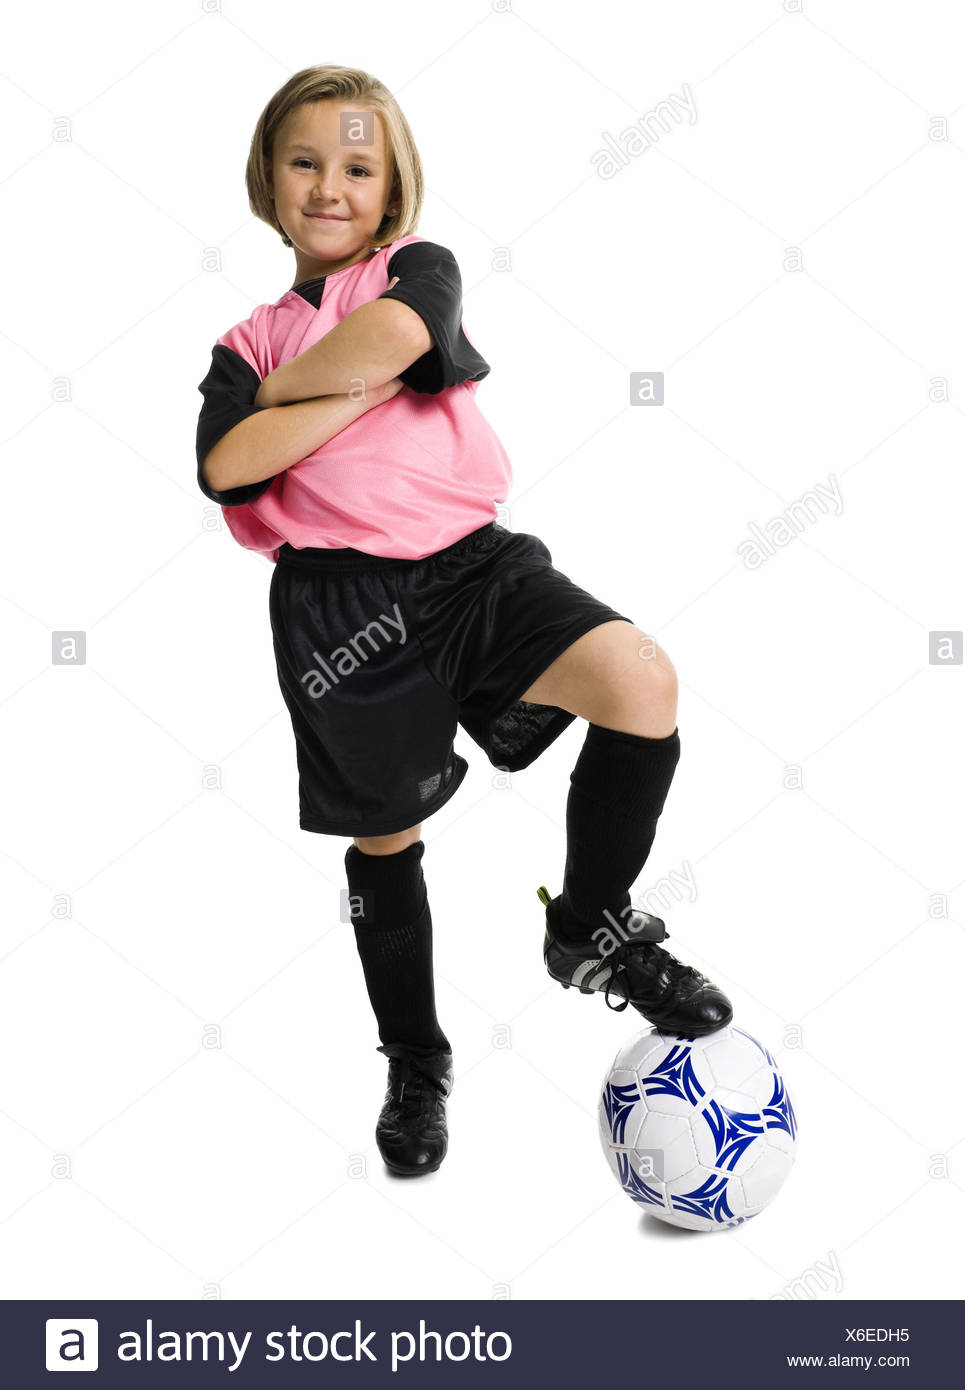 b498c33e0 Young girl in a soccer uniform with ball Stock Photo  279371825 - Alamy